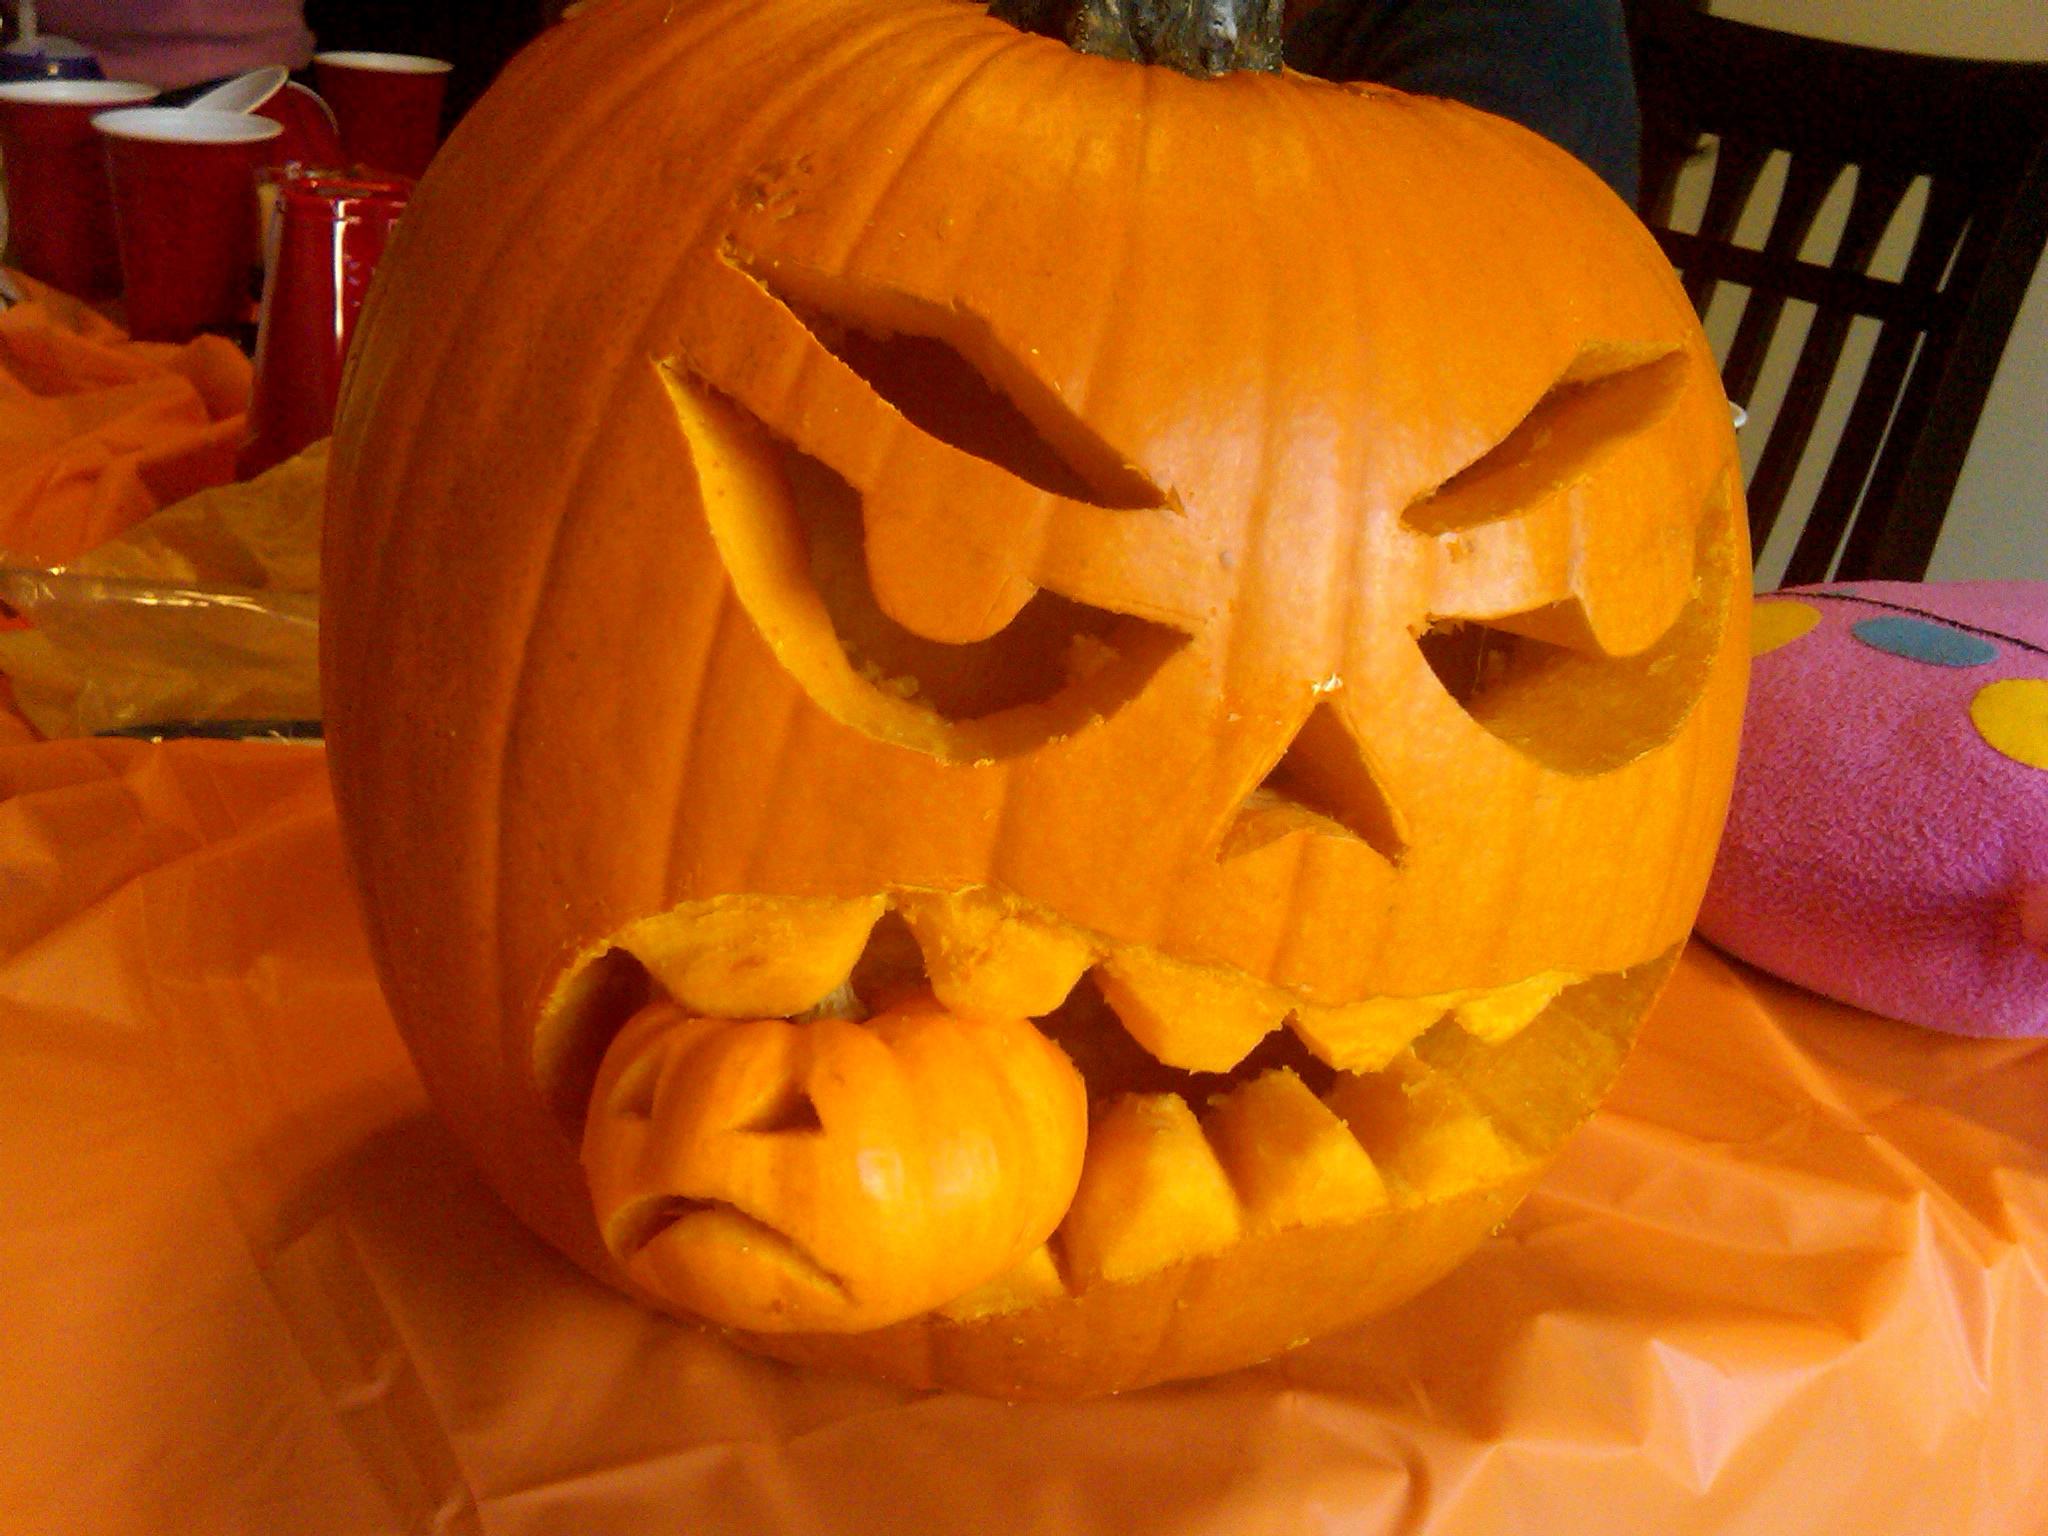 Scary Pumpkin Carving Patterns New Inspiration Ideas